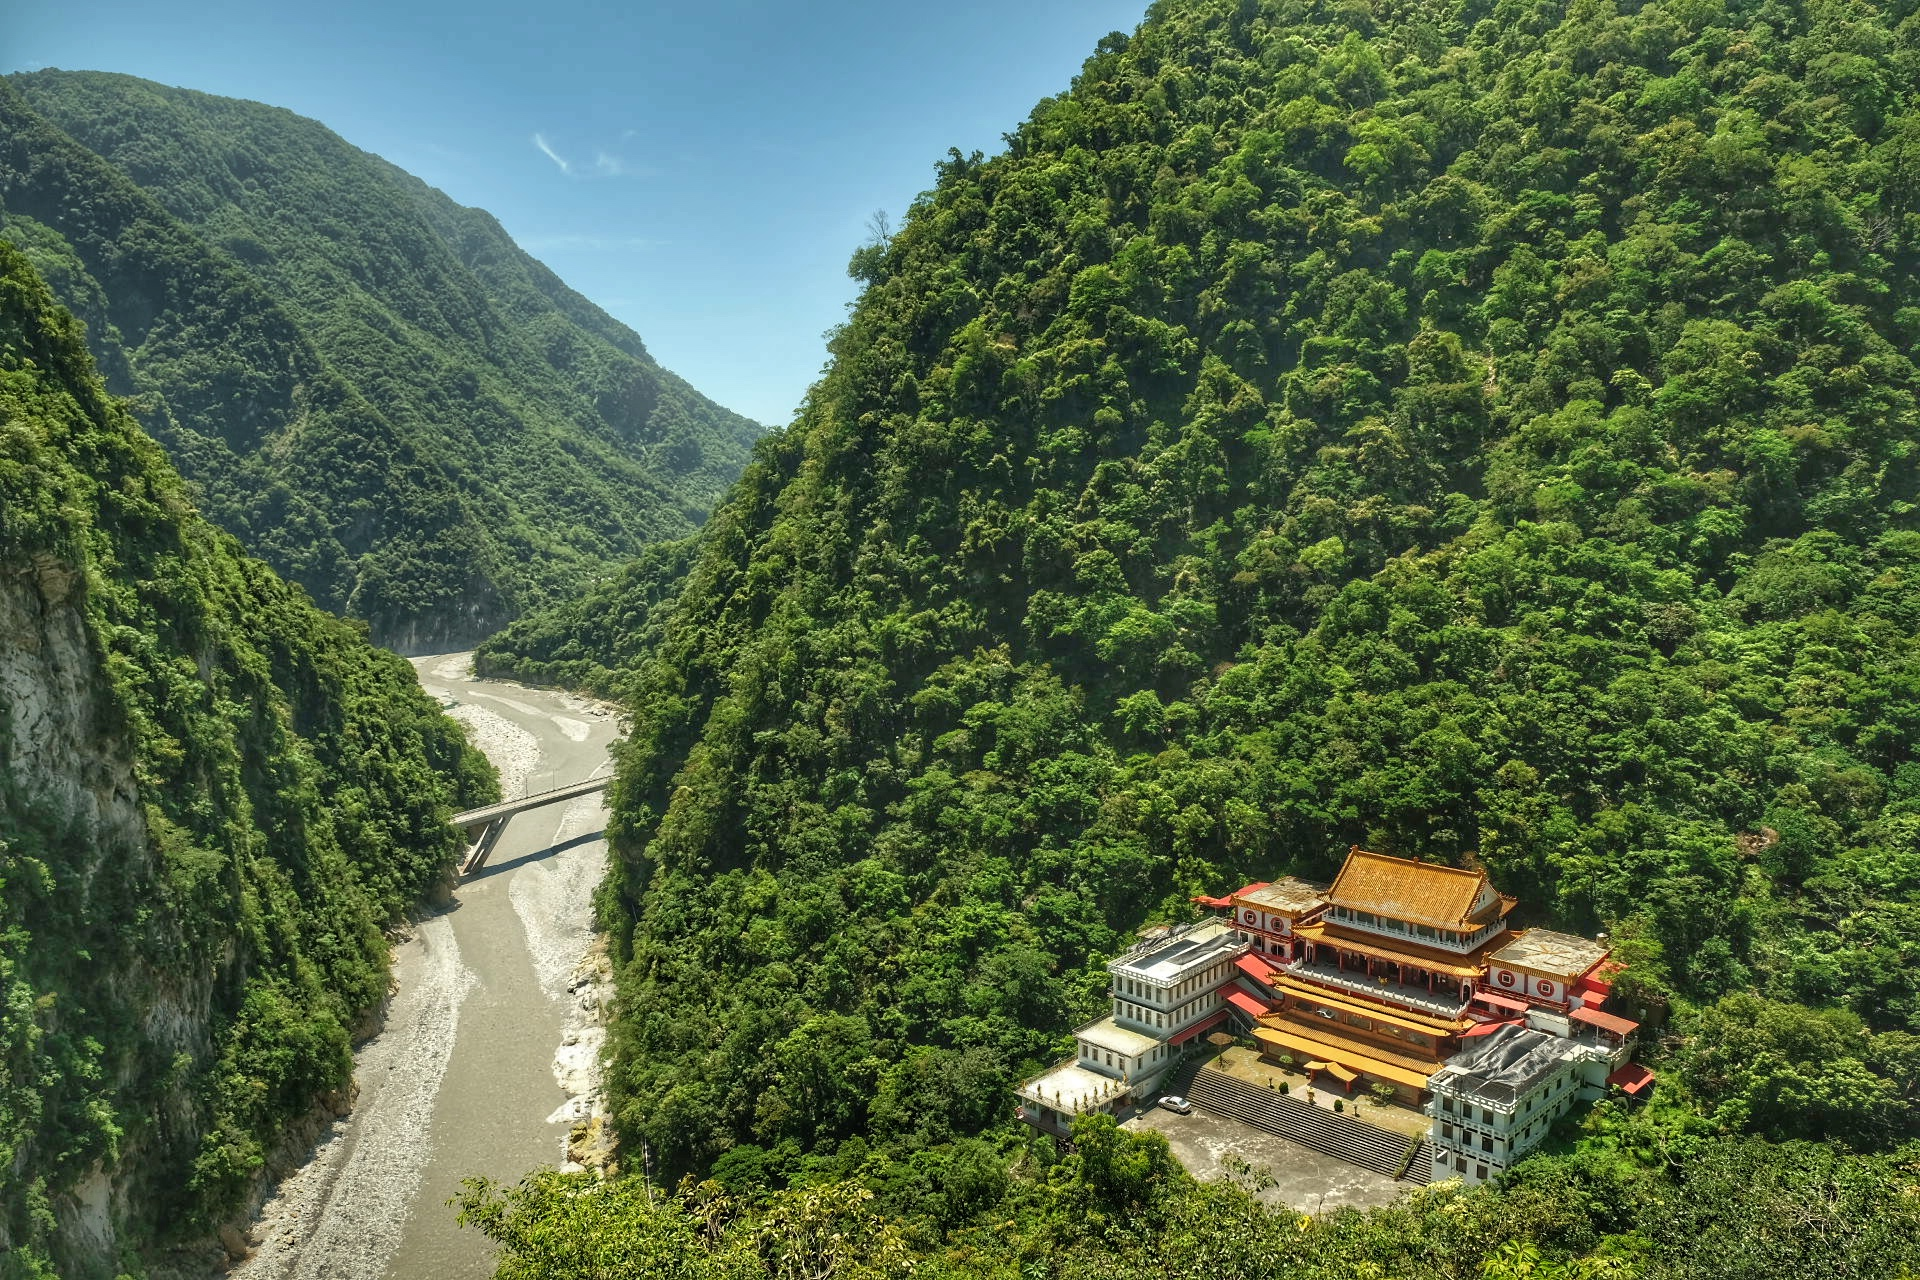 The view from Taroko Bell Tower.